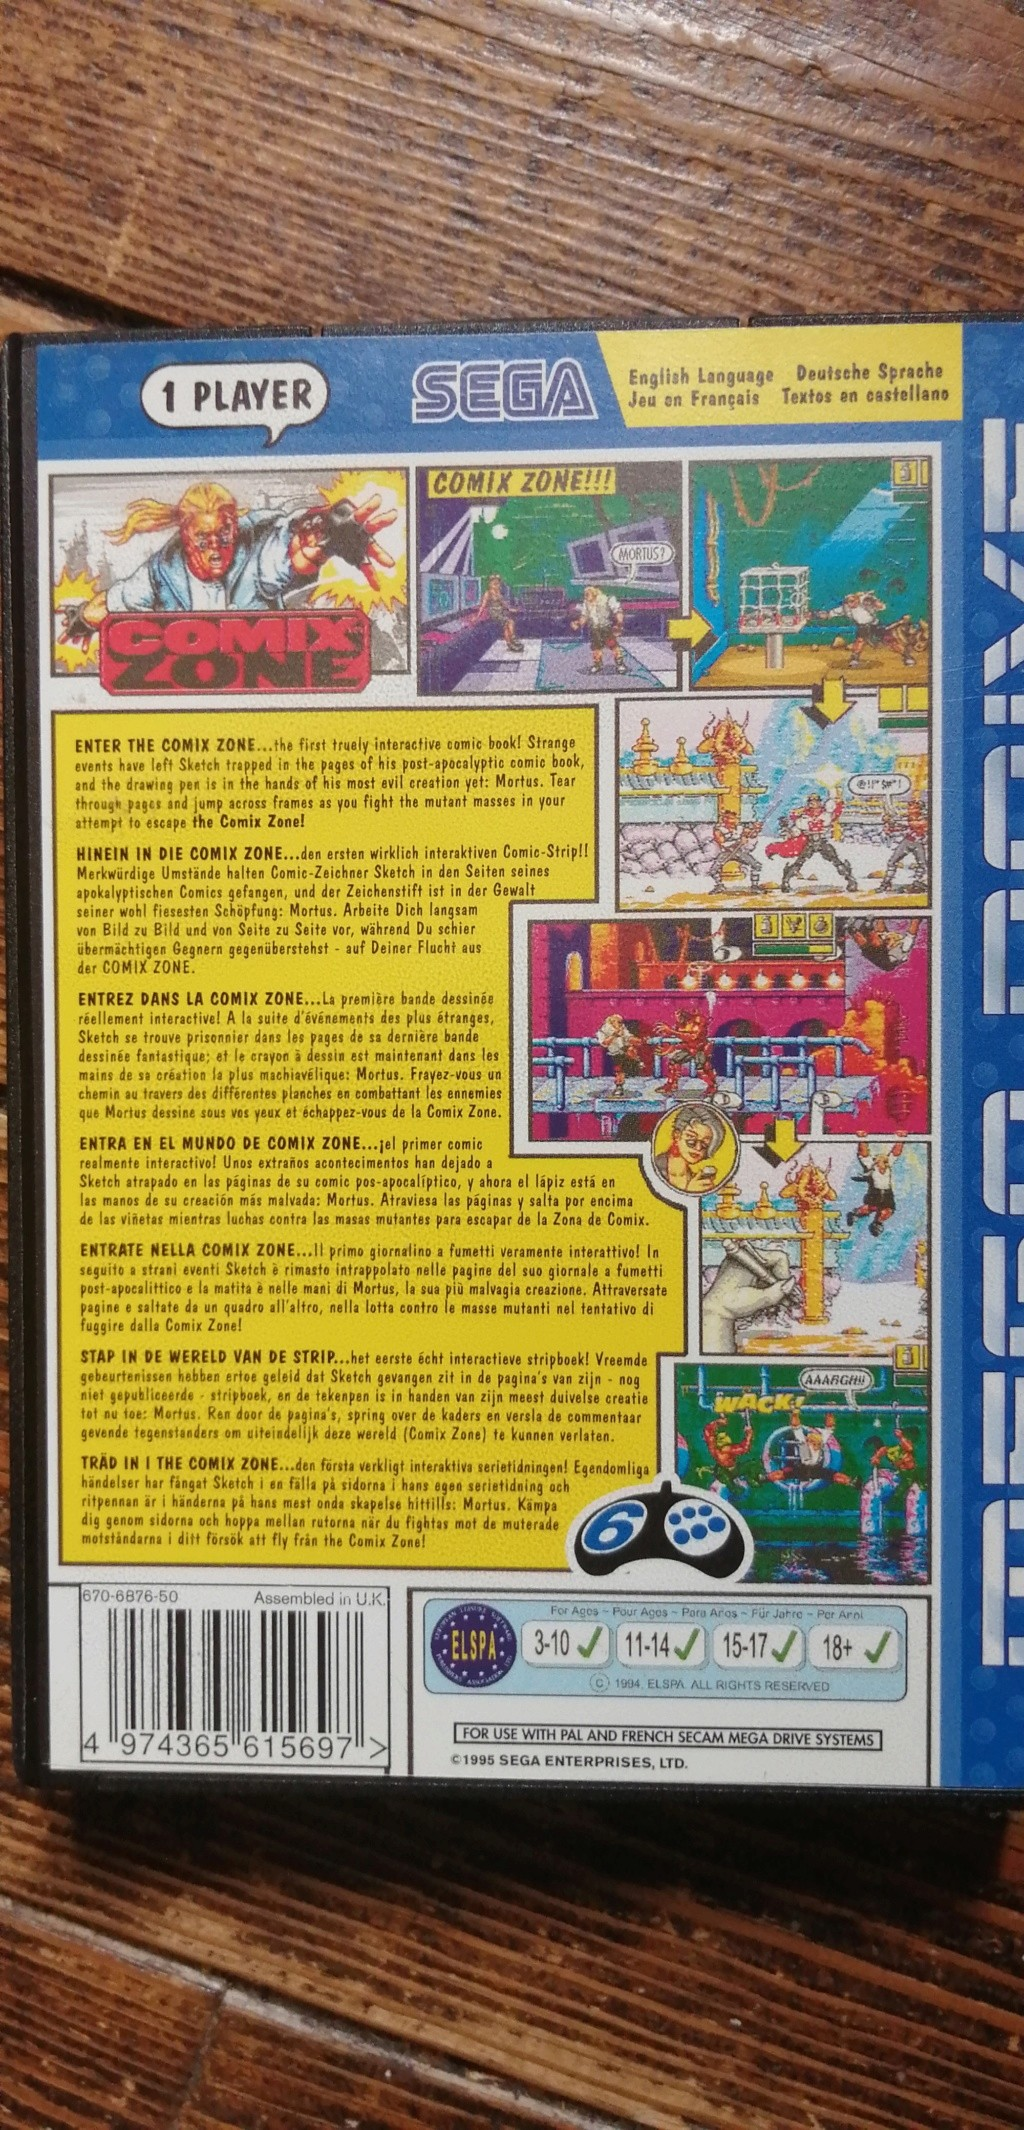 [Ech] Comix Zone MD complet comme neuf(boîte, cartouche, notice, CD)  Img_2021